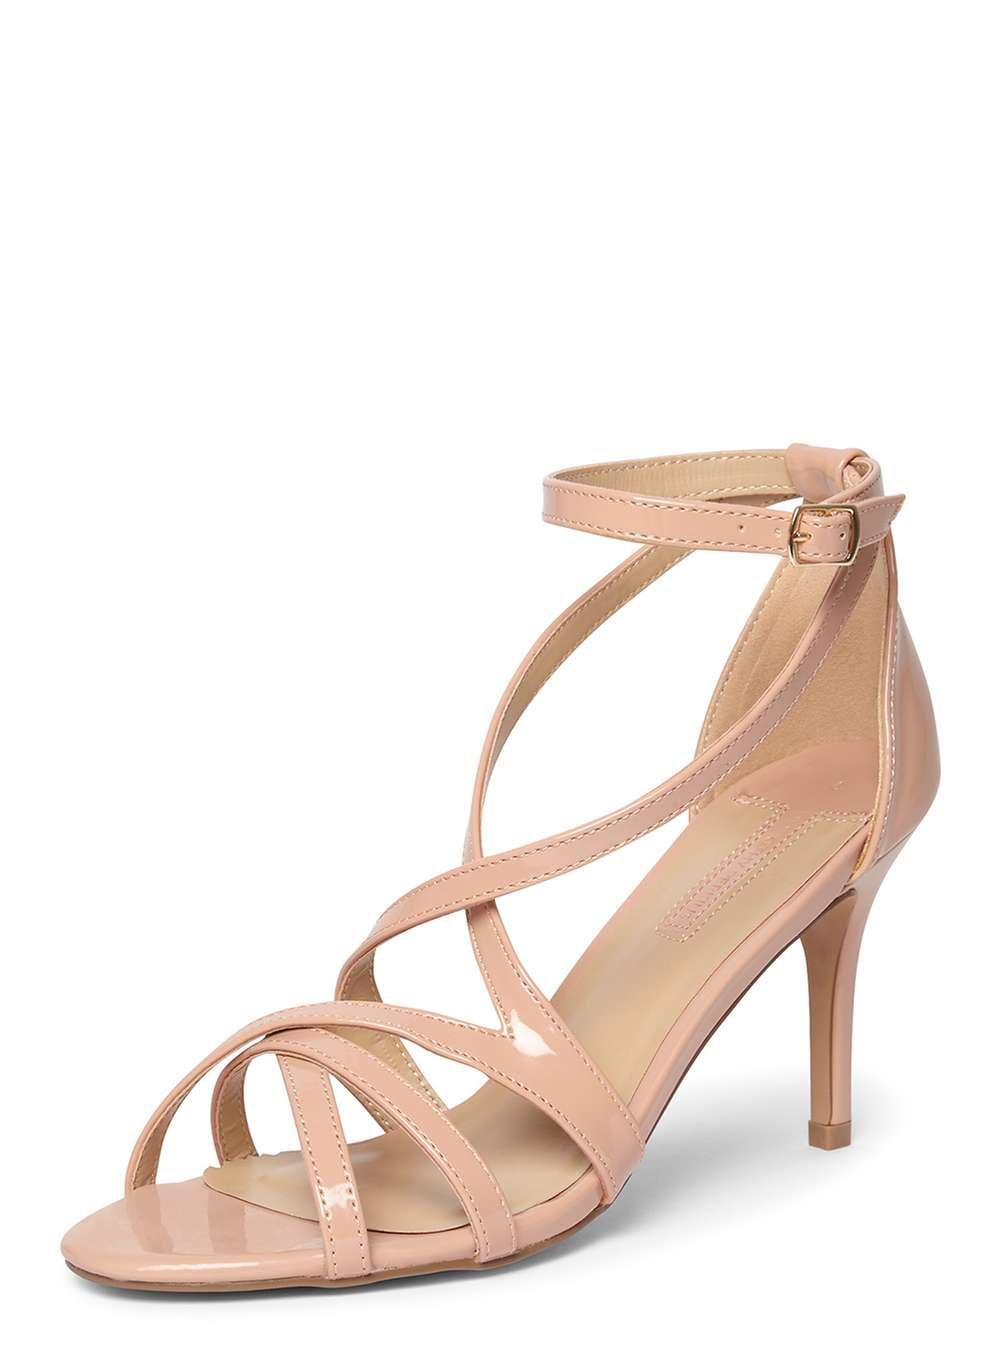 31e423af9f91 Lyst - Dorothy Perkins Blush  scala  Strappy Sandals in Pink